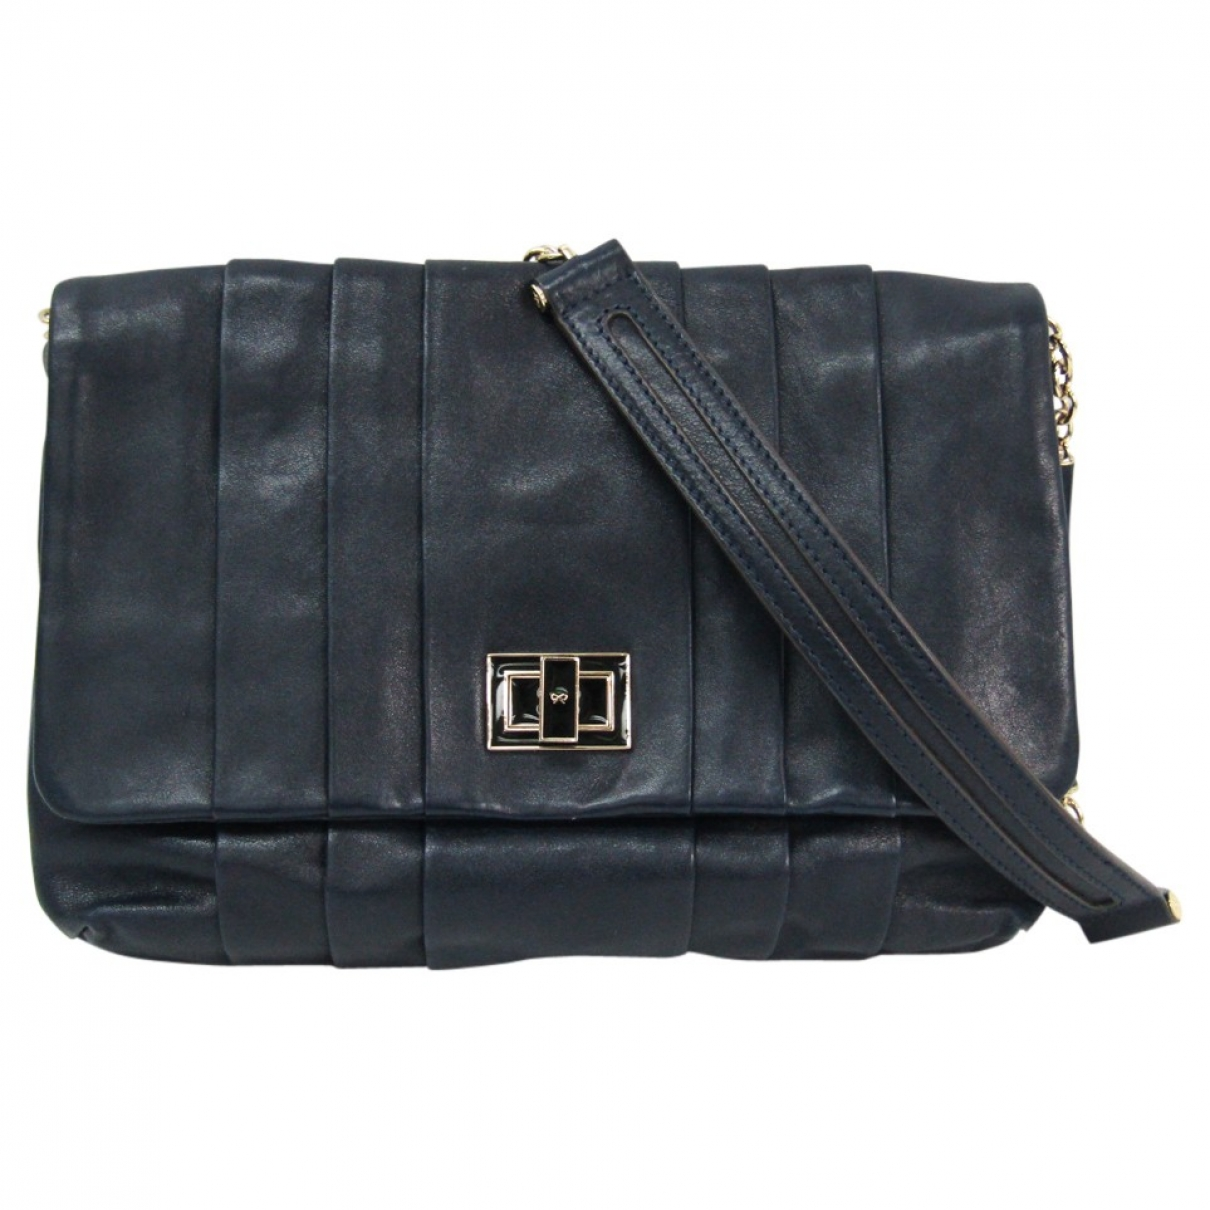 Anya Hindmarch \N Navy Leather handbag for Women \N